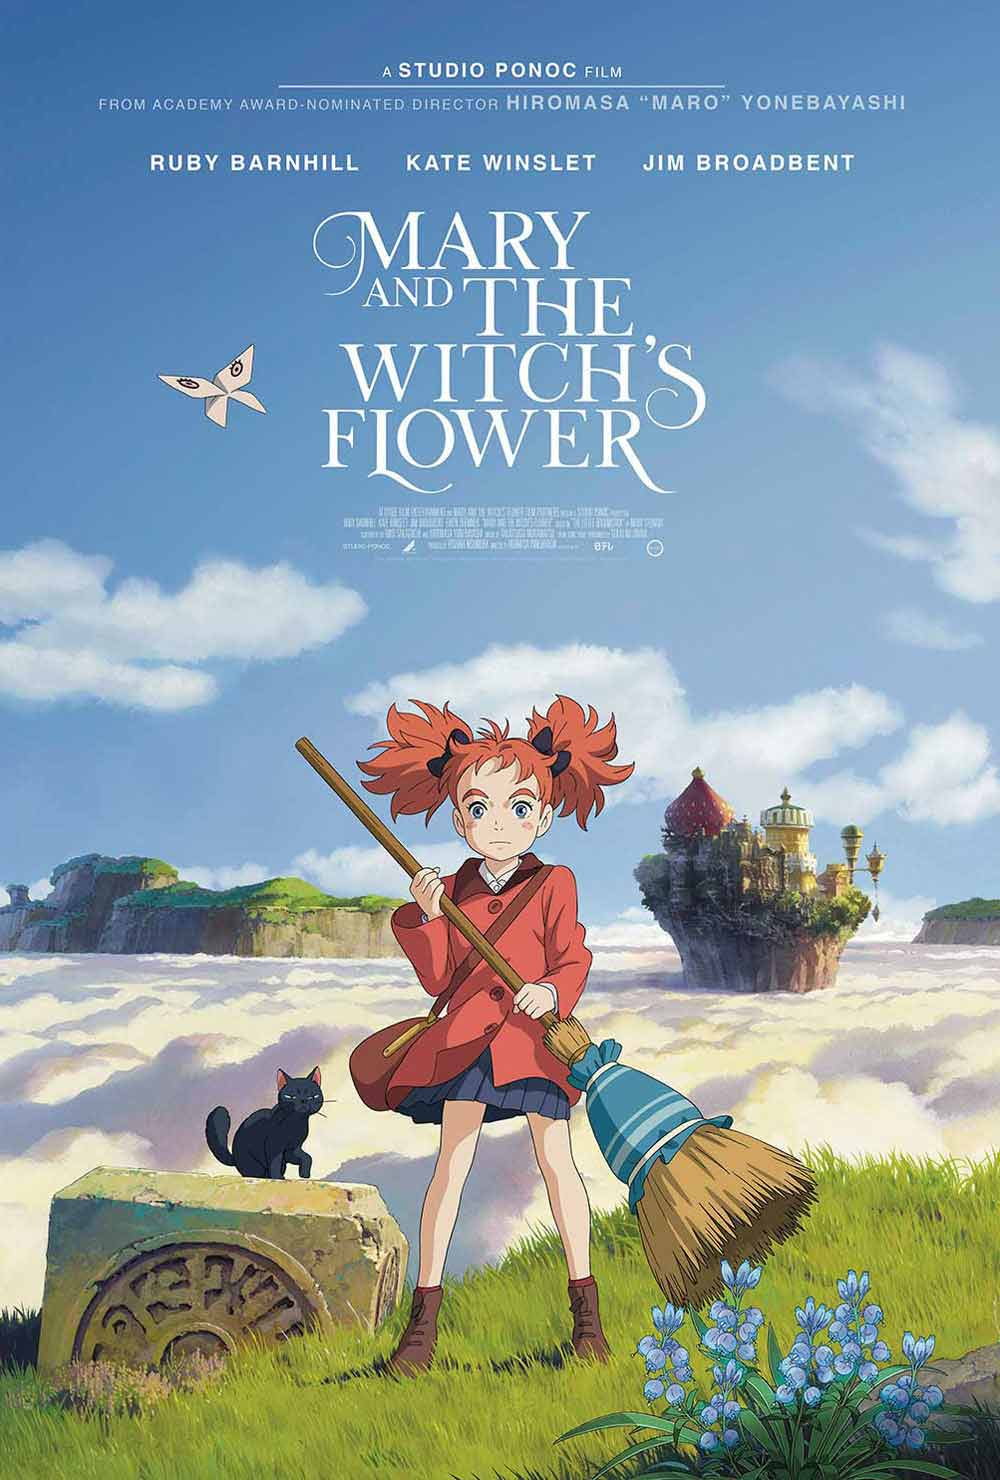 Mary and The Witch's Flower Premiere Event in Movie Theaters | Fathom Events